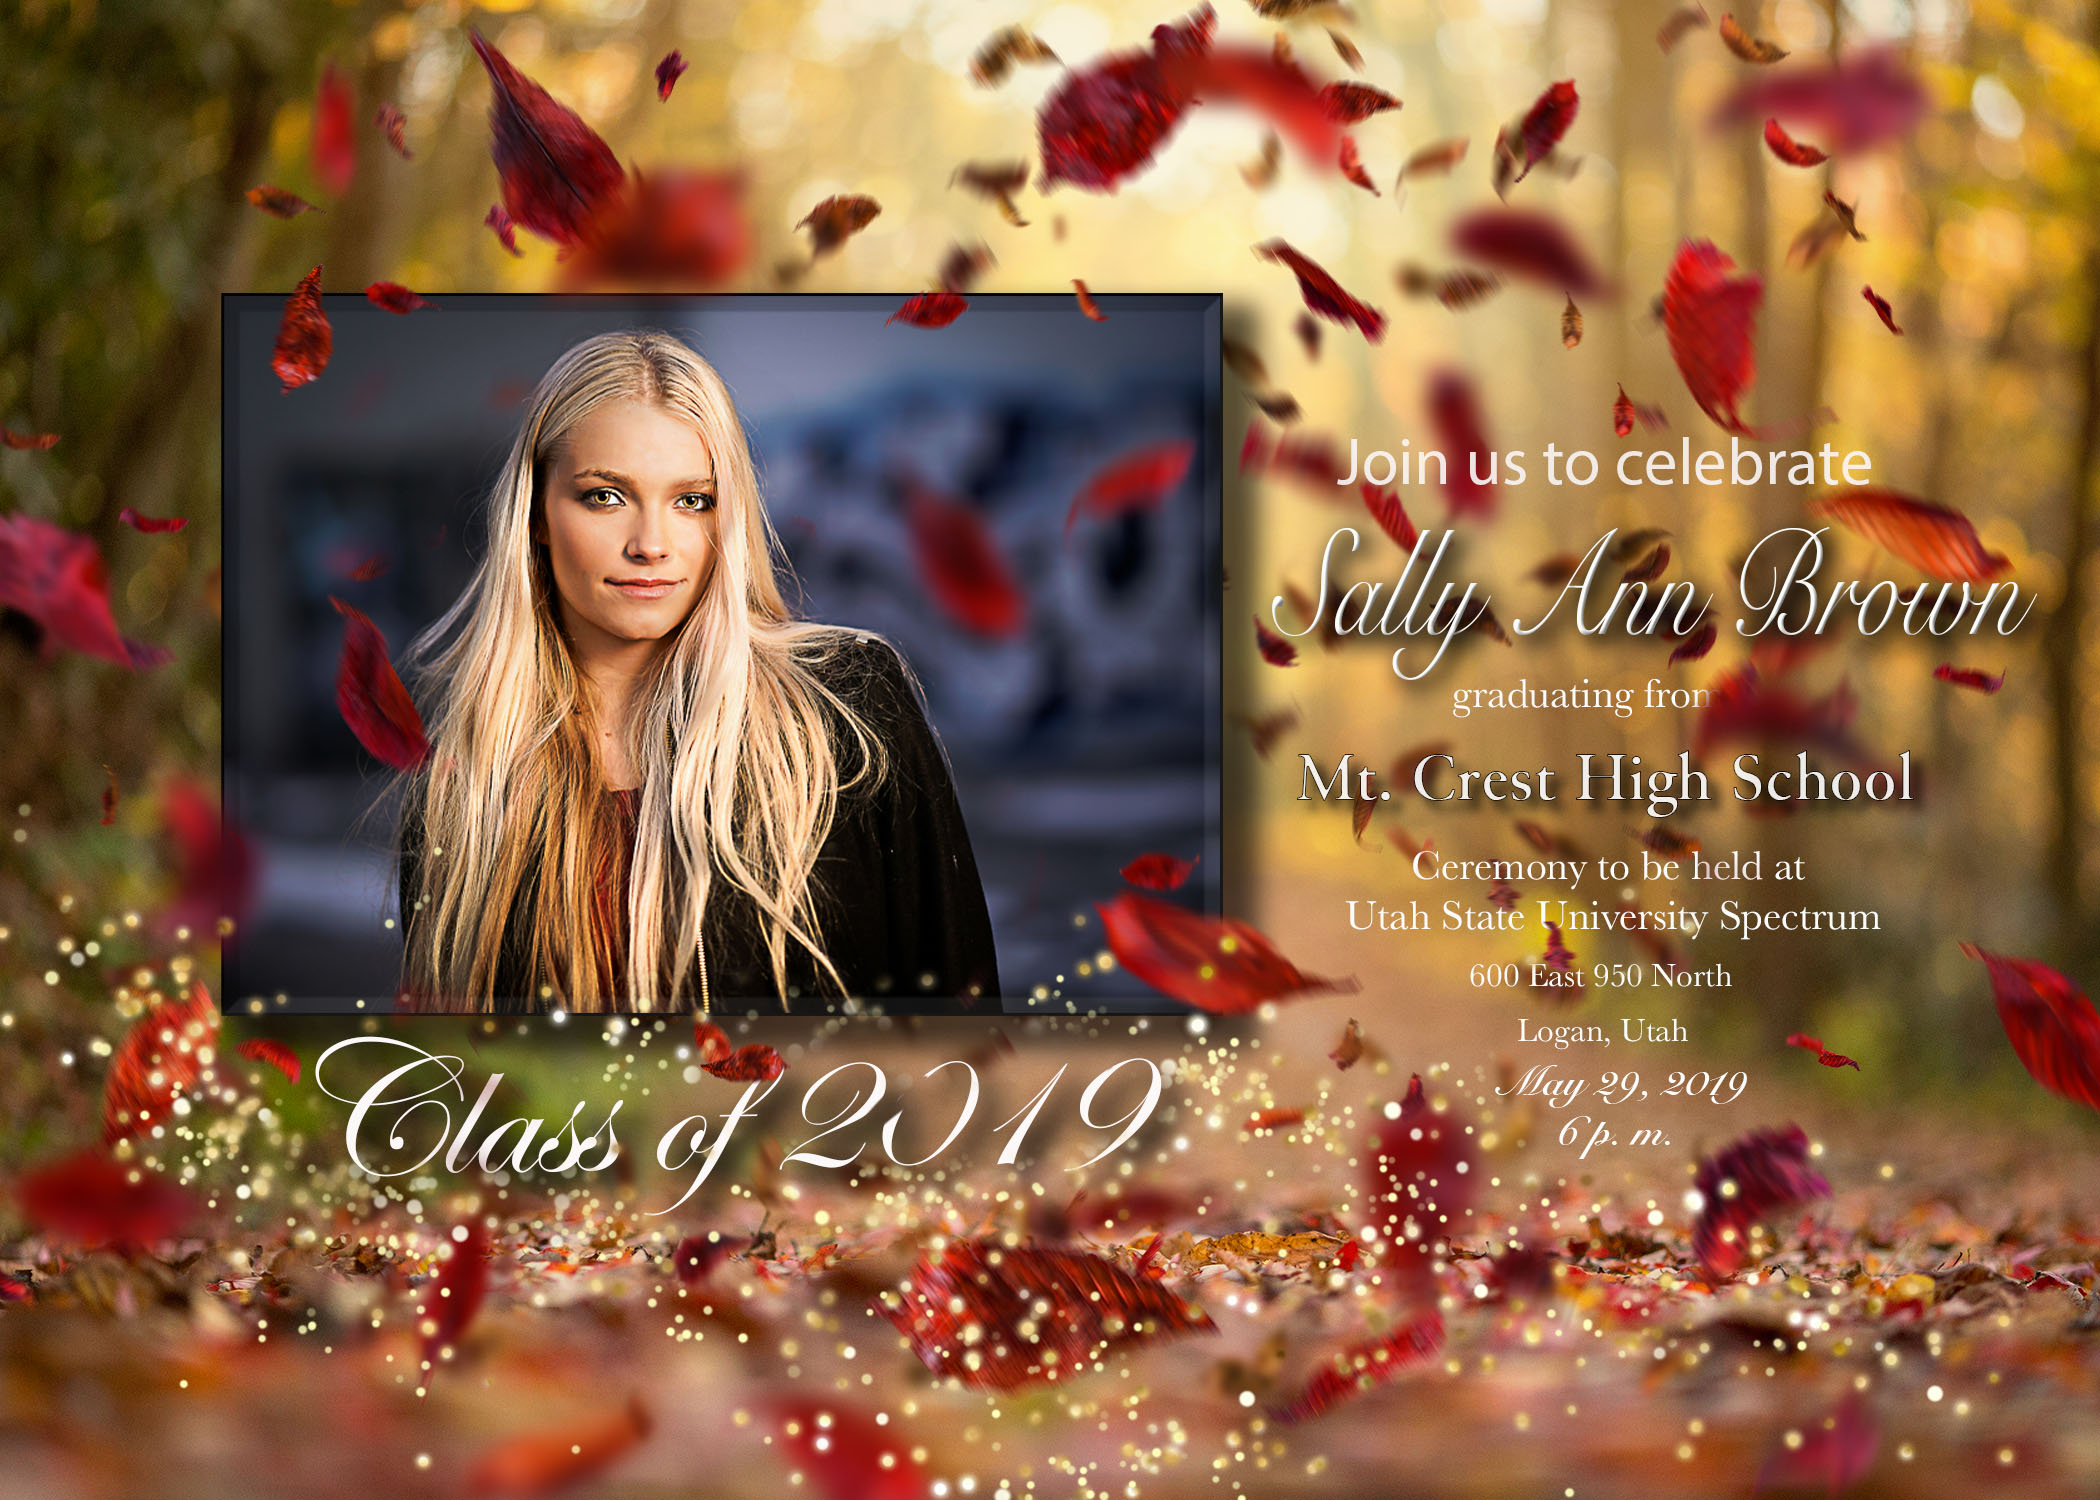 11. Single sided announcement   The glitter and falling leaves can be removed if desired. Just let me know. This is a 5X7 announcement.